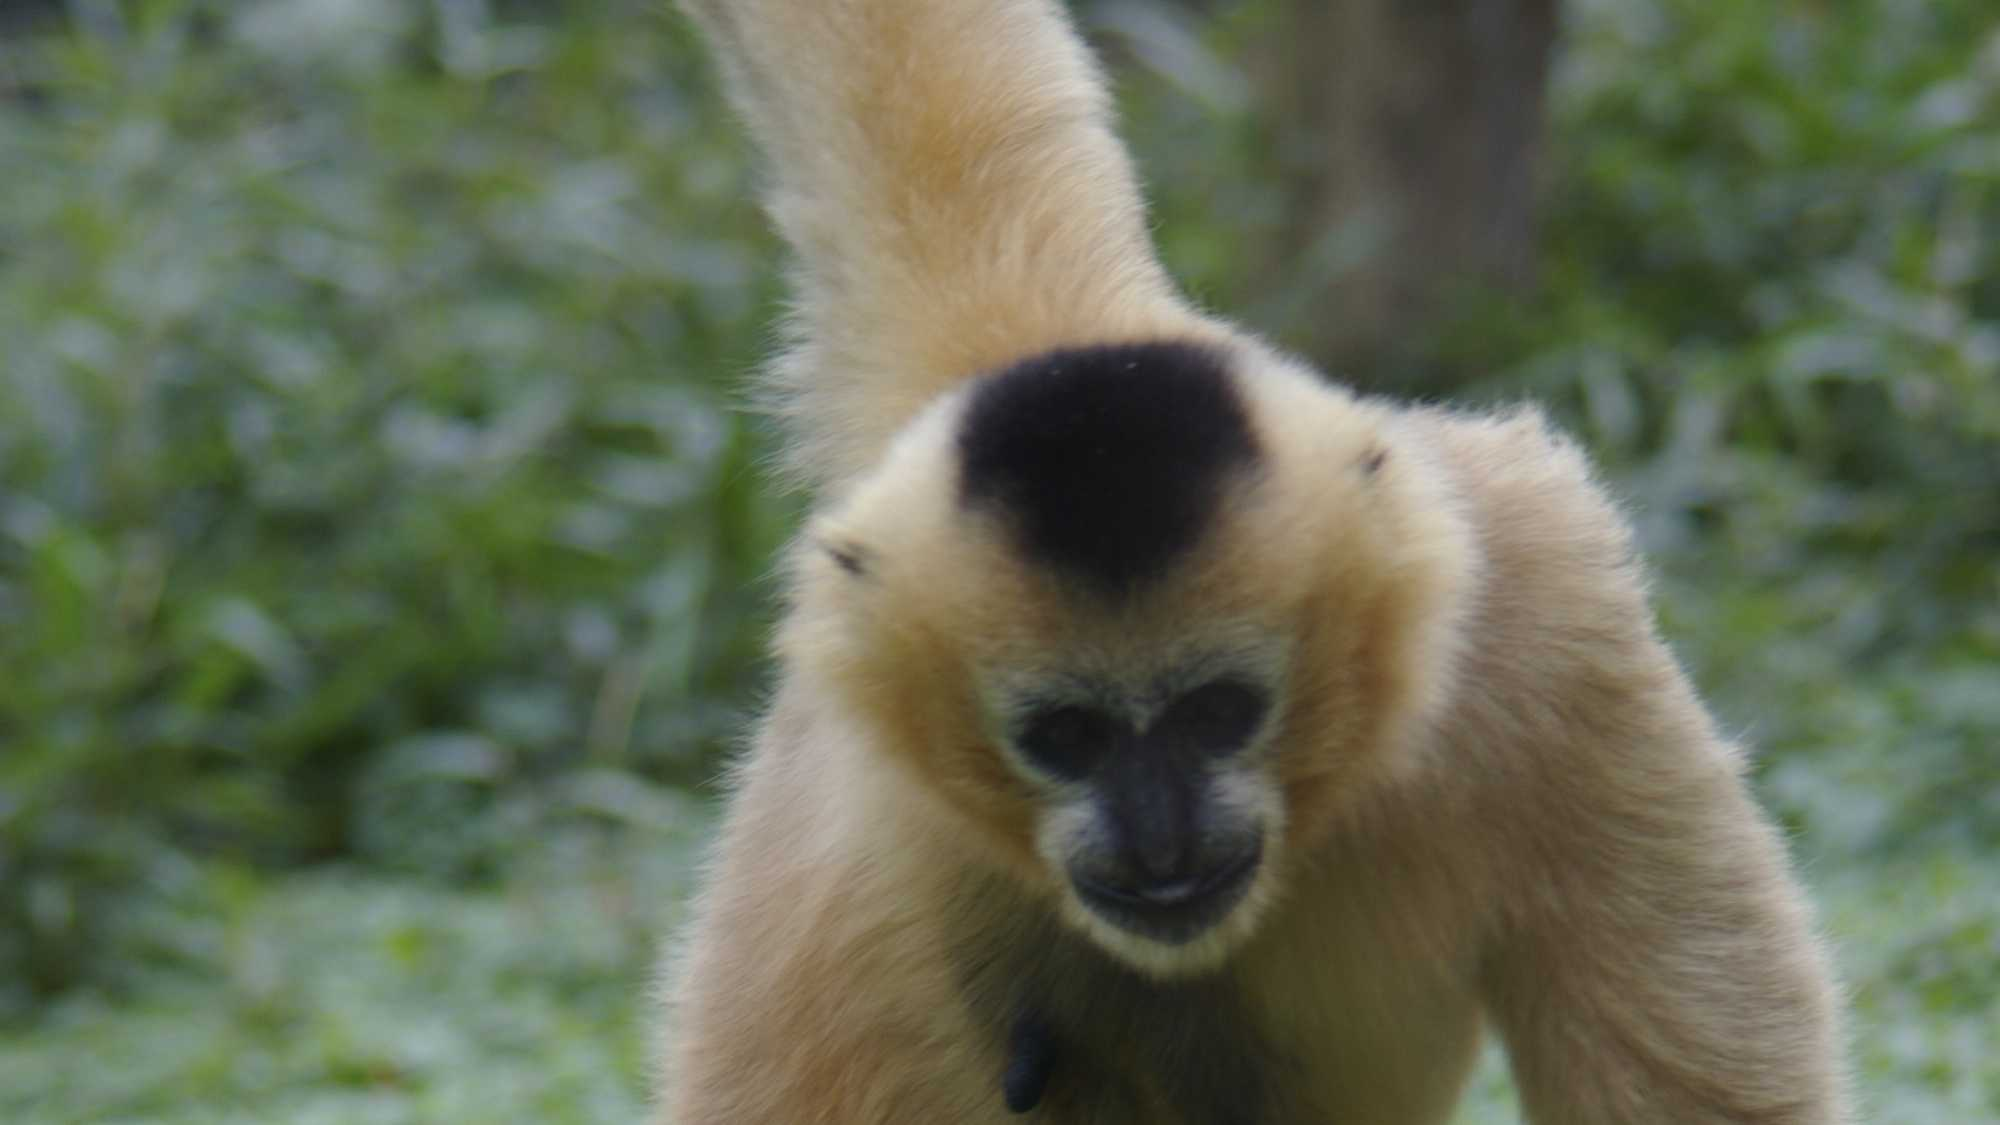 The Stone Zoo welcomed a baby white-cheeked gibbon on Oct. 16. The baby -- whose gender is not yet known -- was born to Iggy and Kien Nhan and has an older sibling, Paddy, 3. White-cheeked gibbons are critically endangered, with a population that's declined by at least 80 percent in the past 45 years due to hunting and habitat loss.